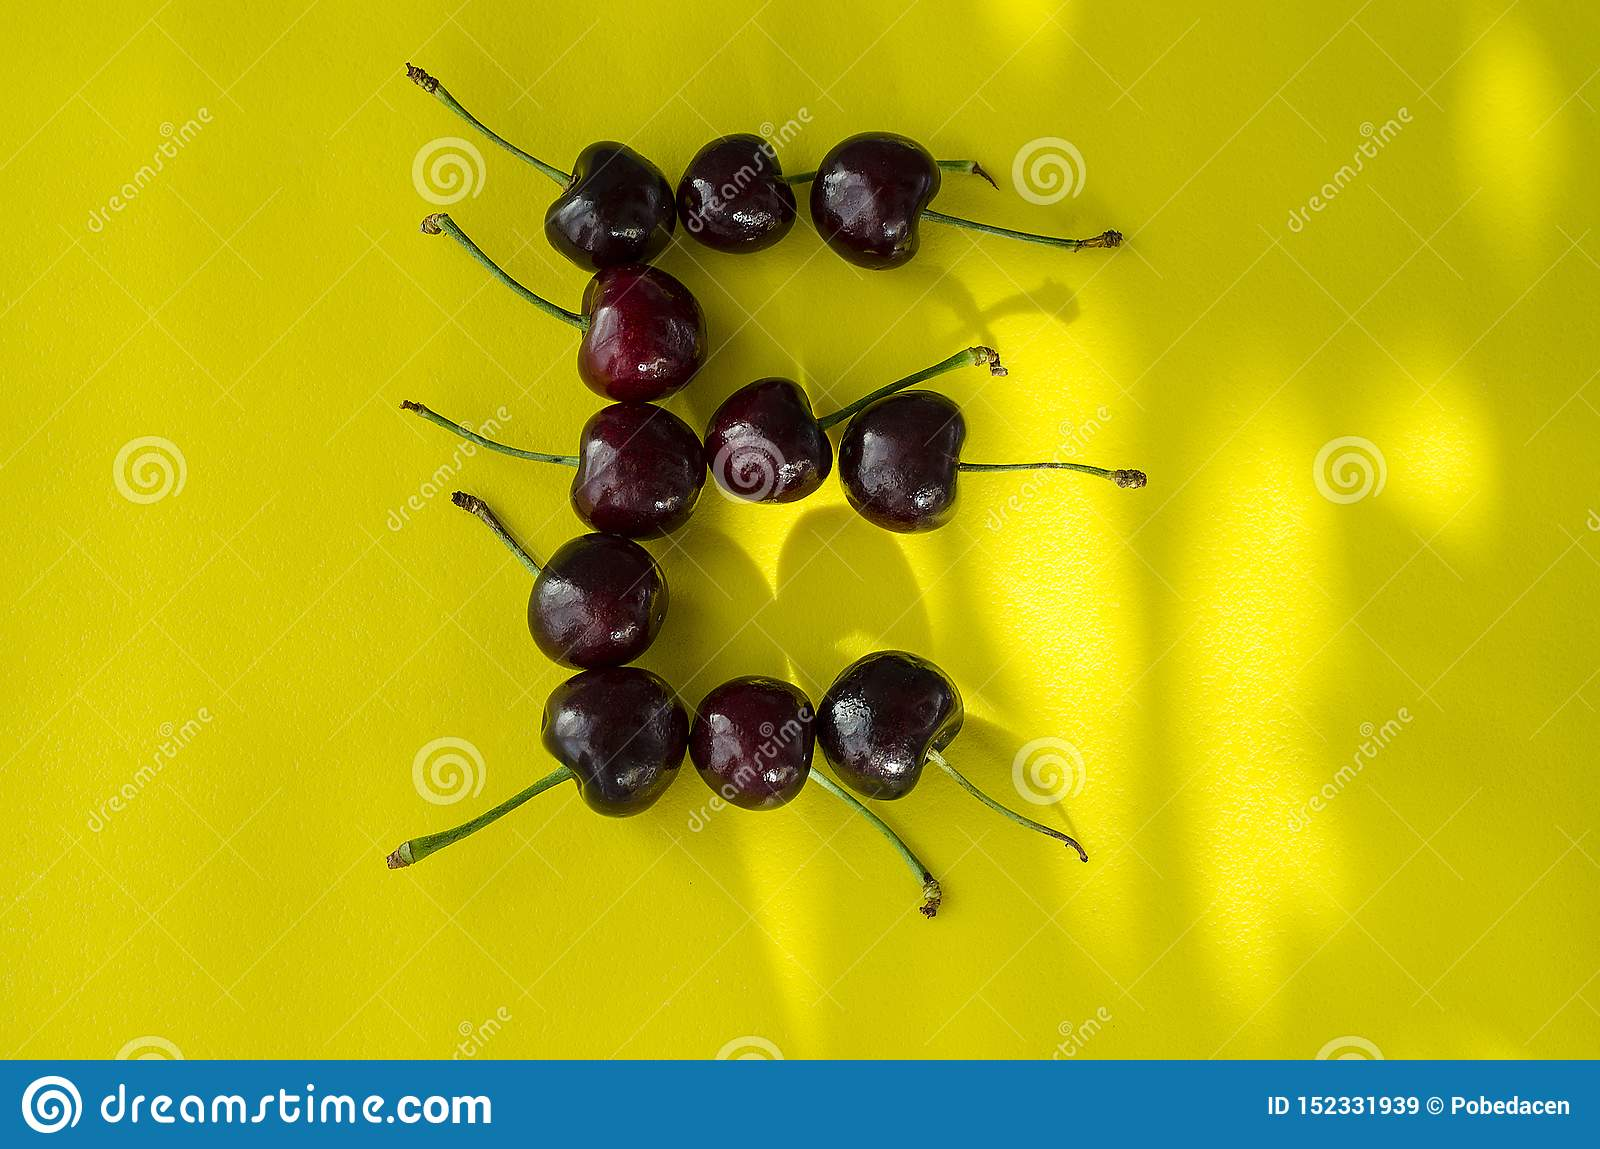 Cherry berries on a bright yellow background in the form of the letter E with sun highlights